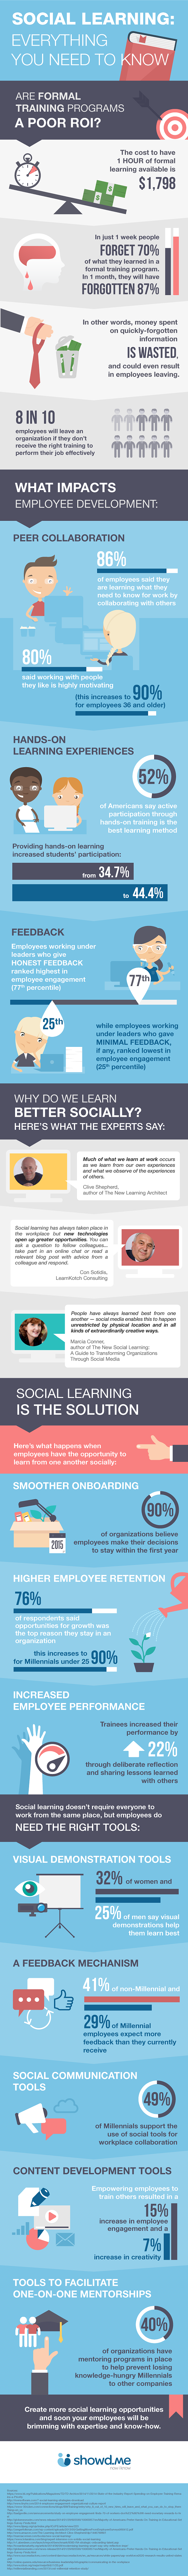 The-ROI-of-Social-Learning-Infographic